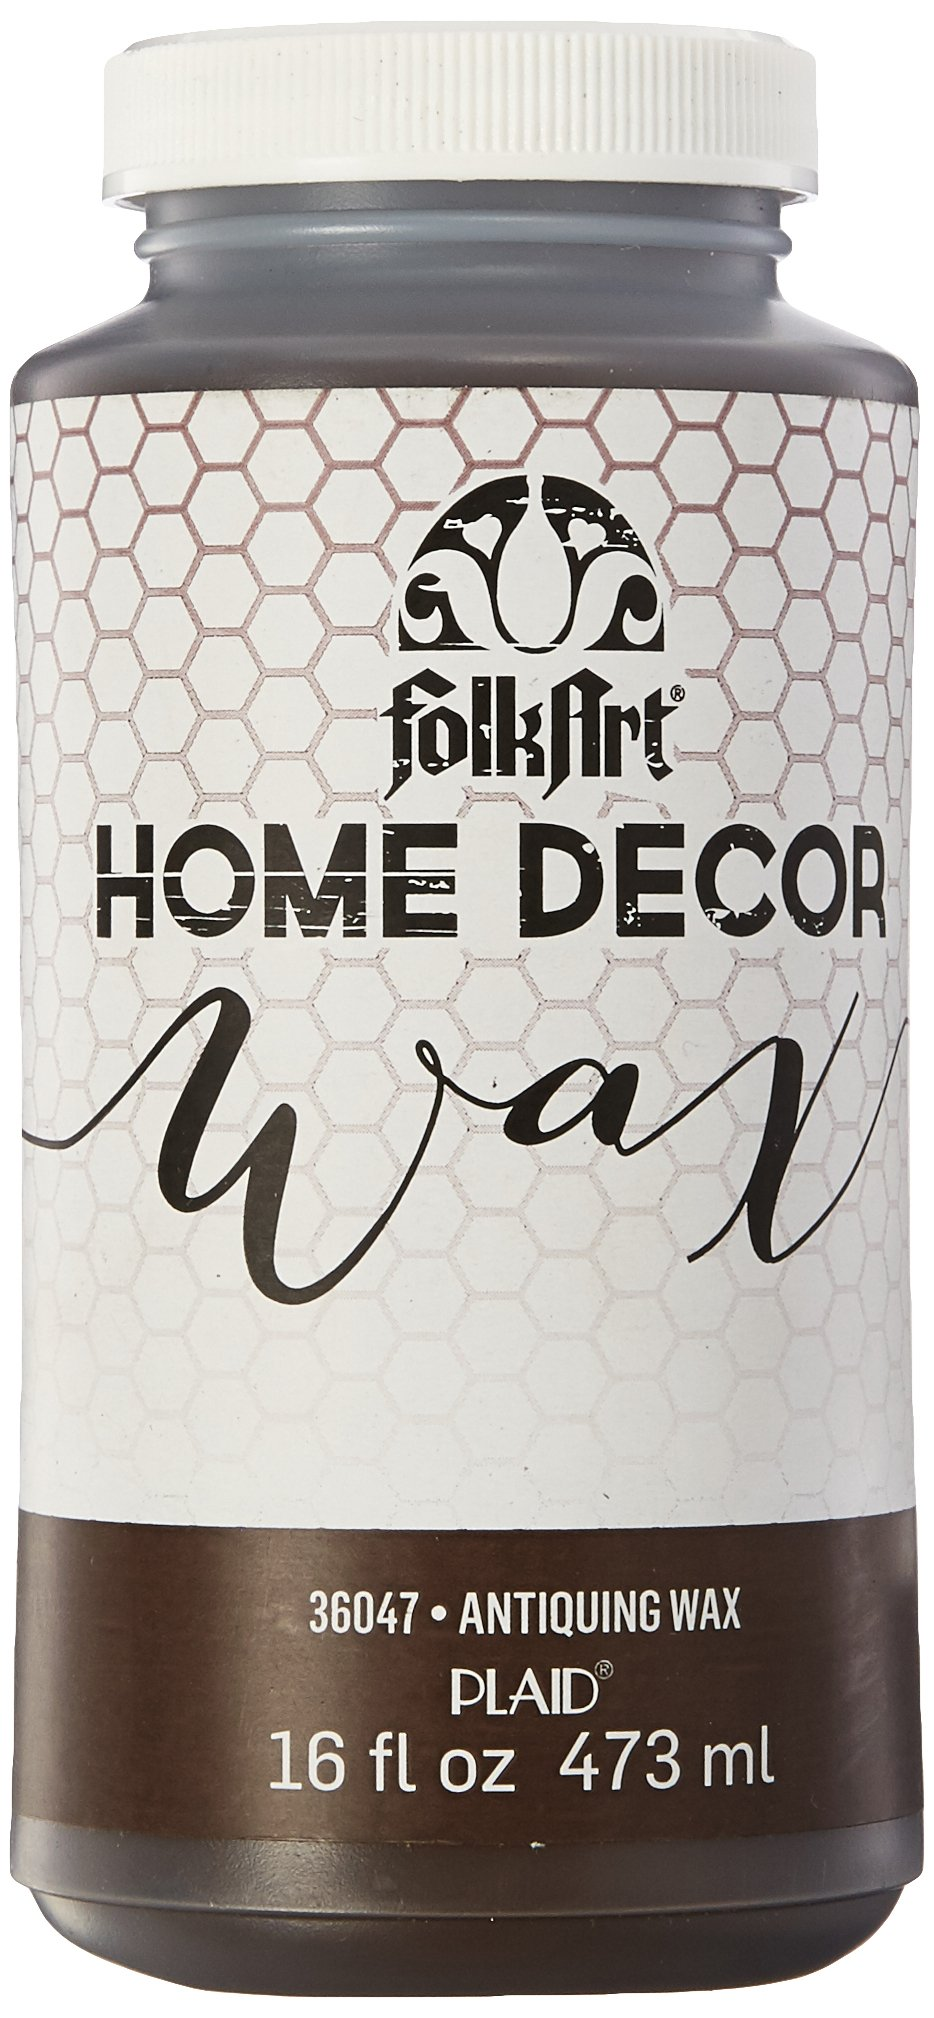 FolkArt 36047 Home Decor Chalk Furniture & Craft Paint in Assorted Colors, 16 ounce, Antique Wax